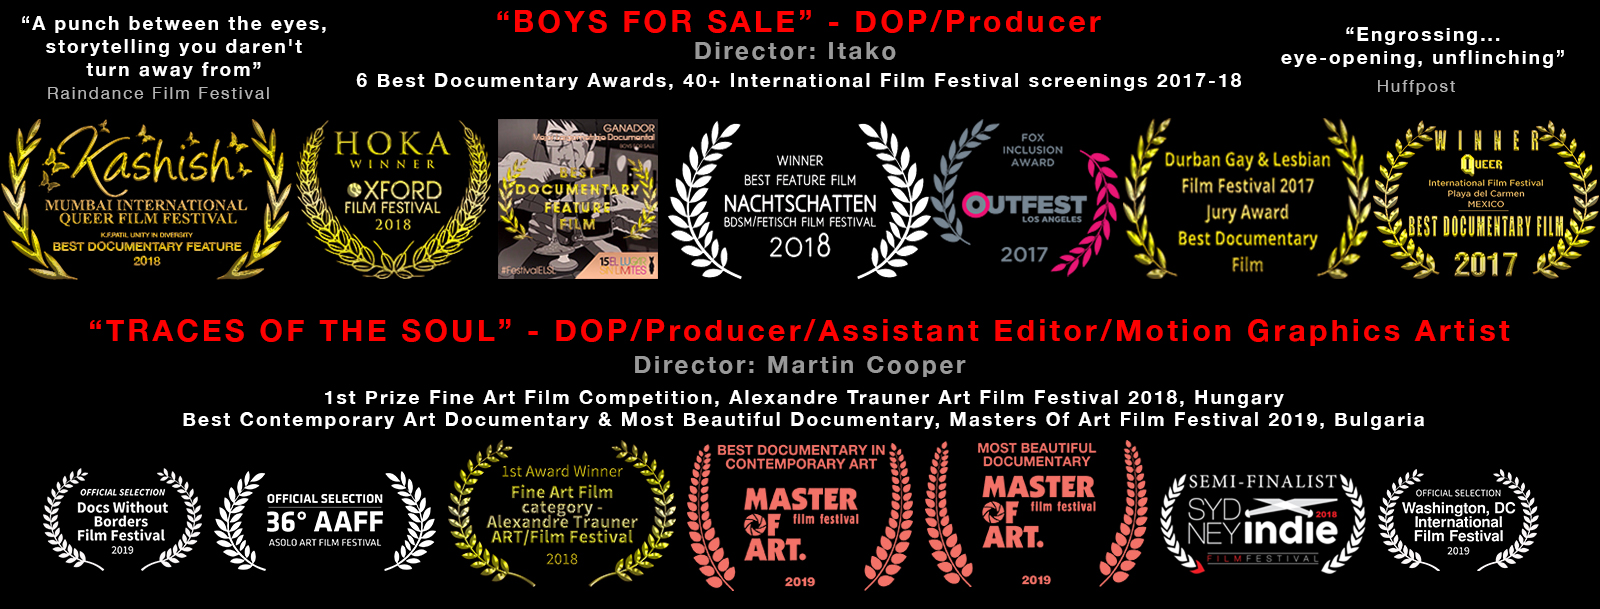 Multi award winning Feature Documentary 'Boys For Sale' laurels -  Adrian Storey/Uchujin-DOP & Producer